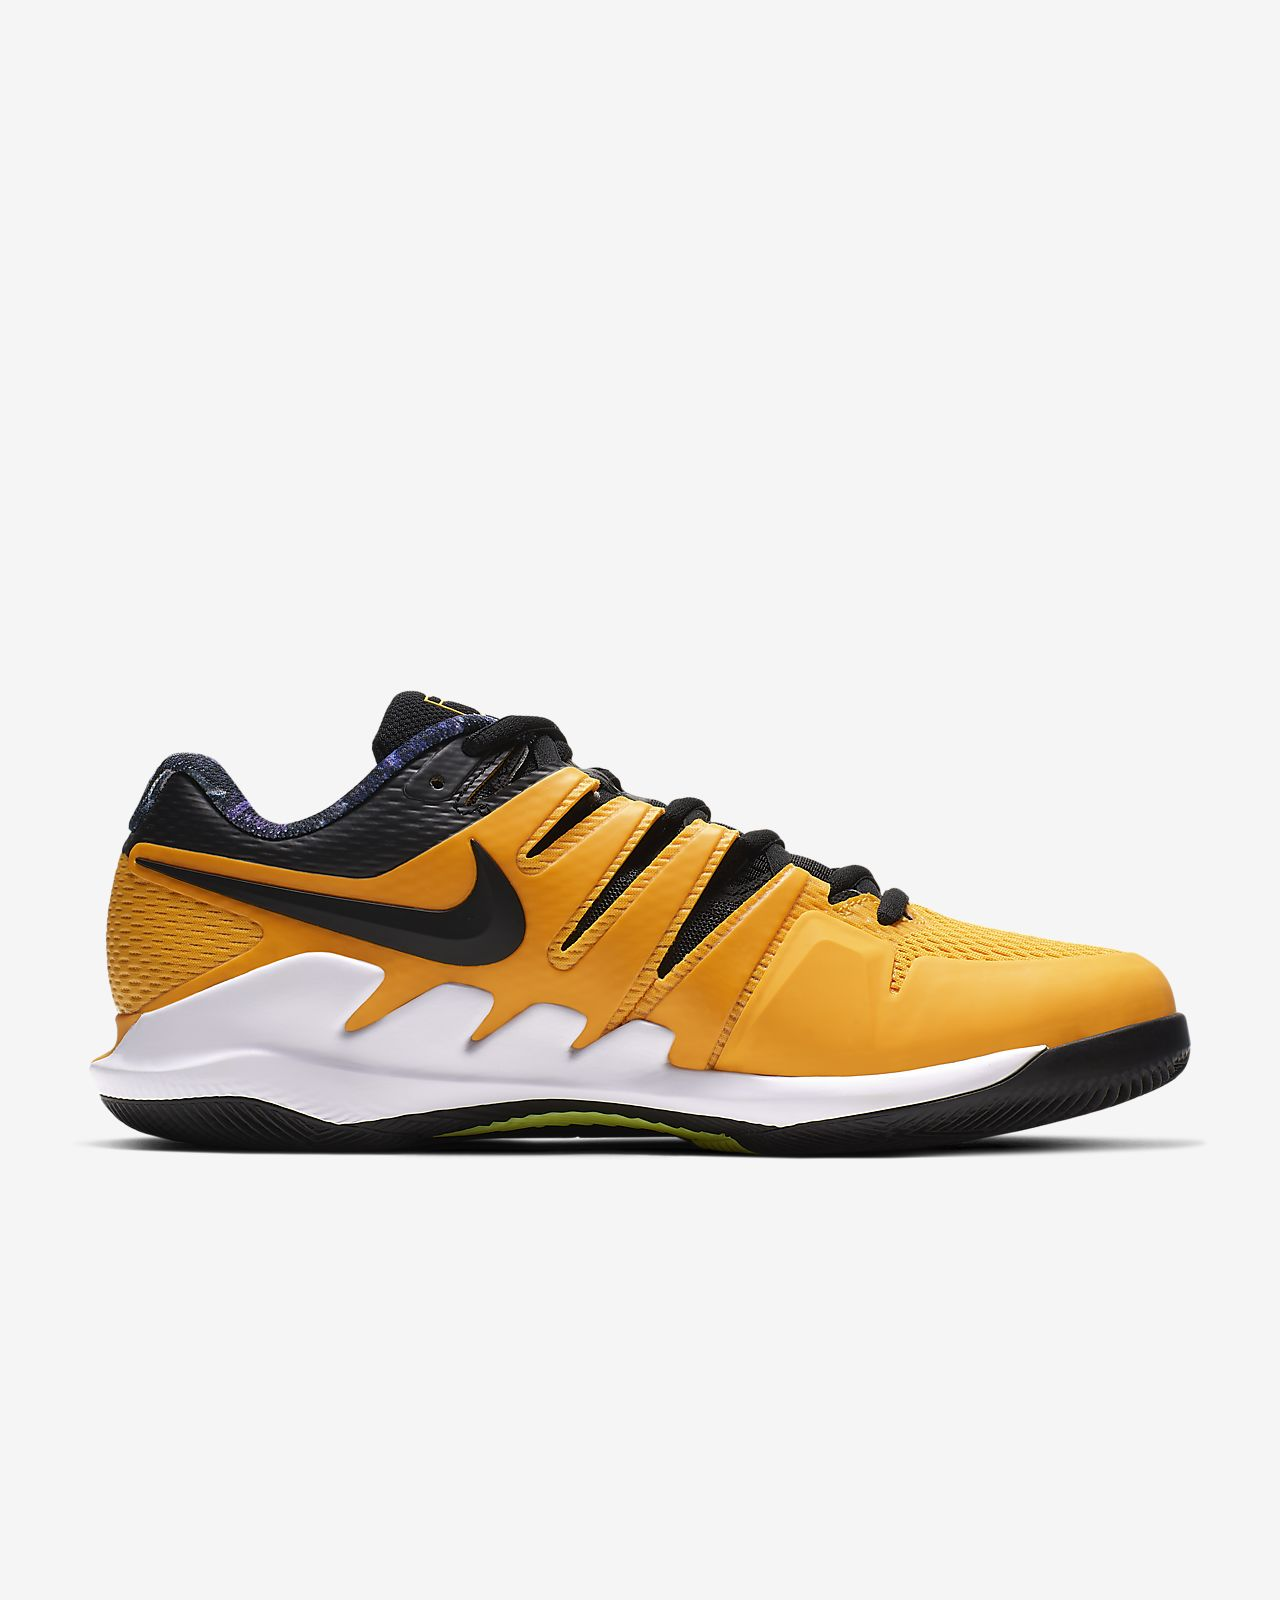 Original Zapatillas Tenis Nike Air Zoom Vapor X Clay Gold